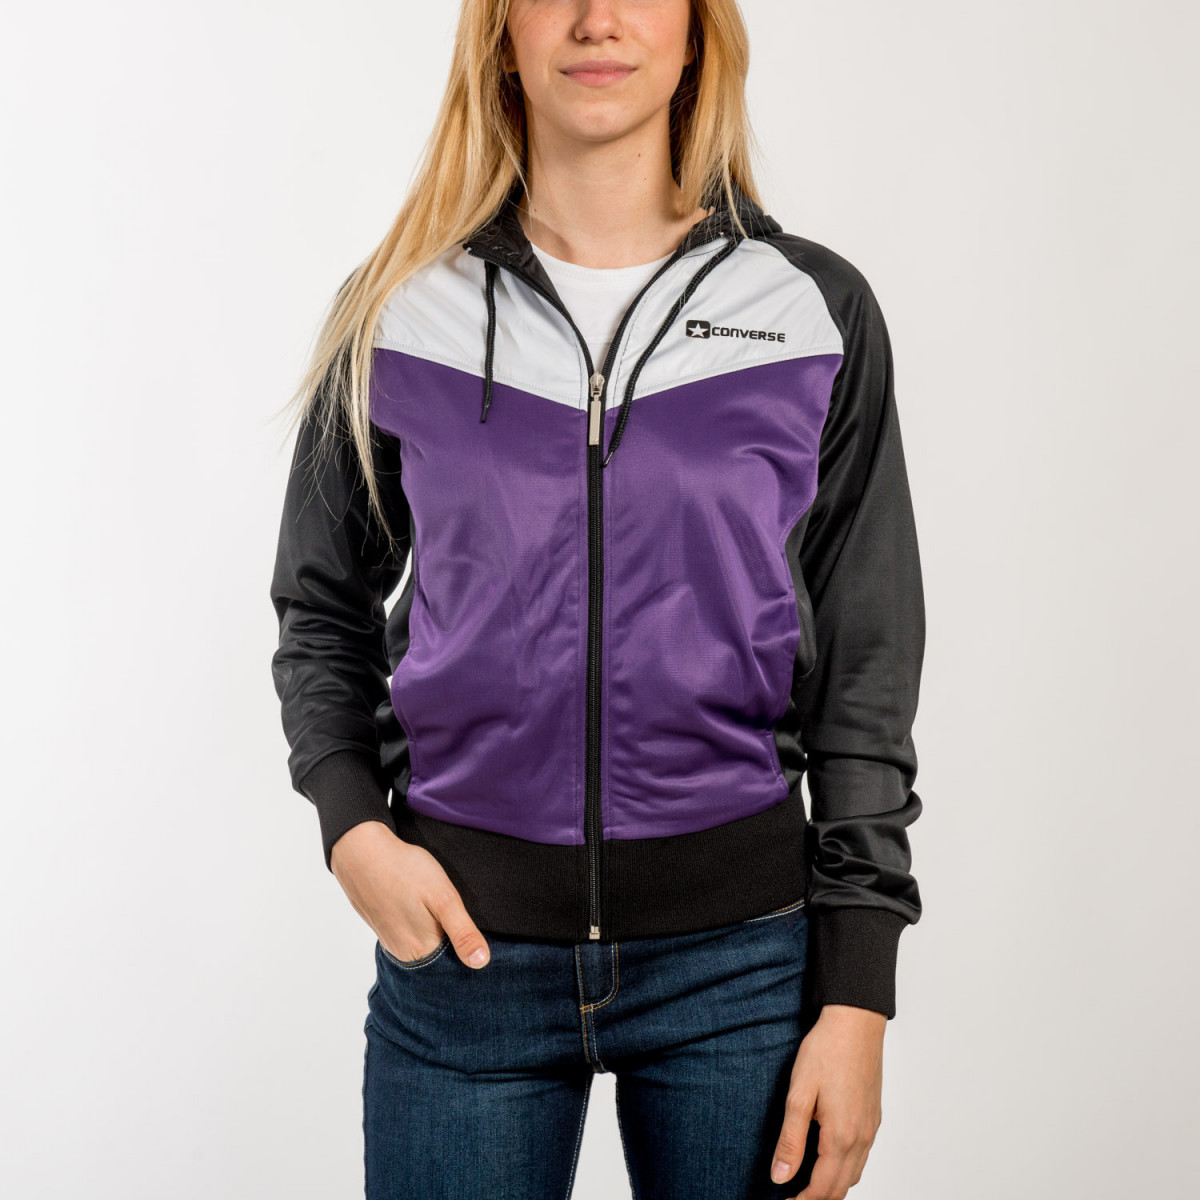 CAMPERA CONVERSE DEPORTIVA PAST WOMAN